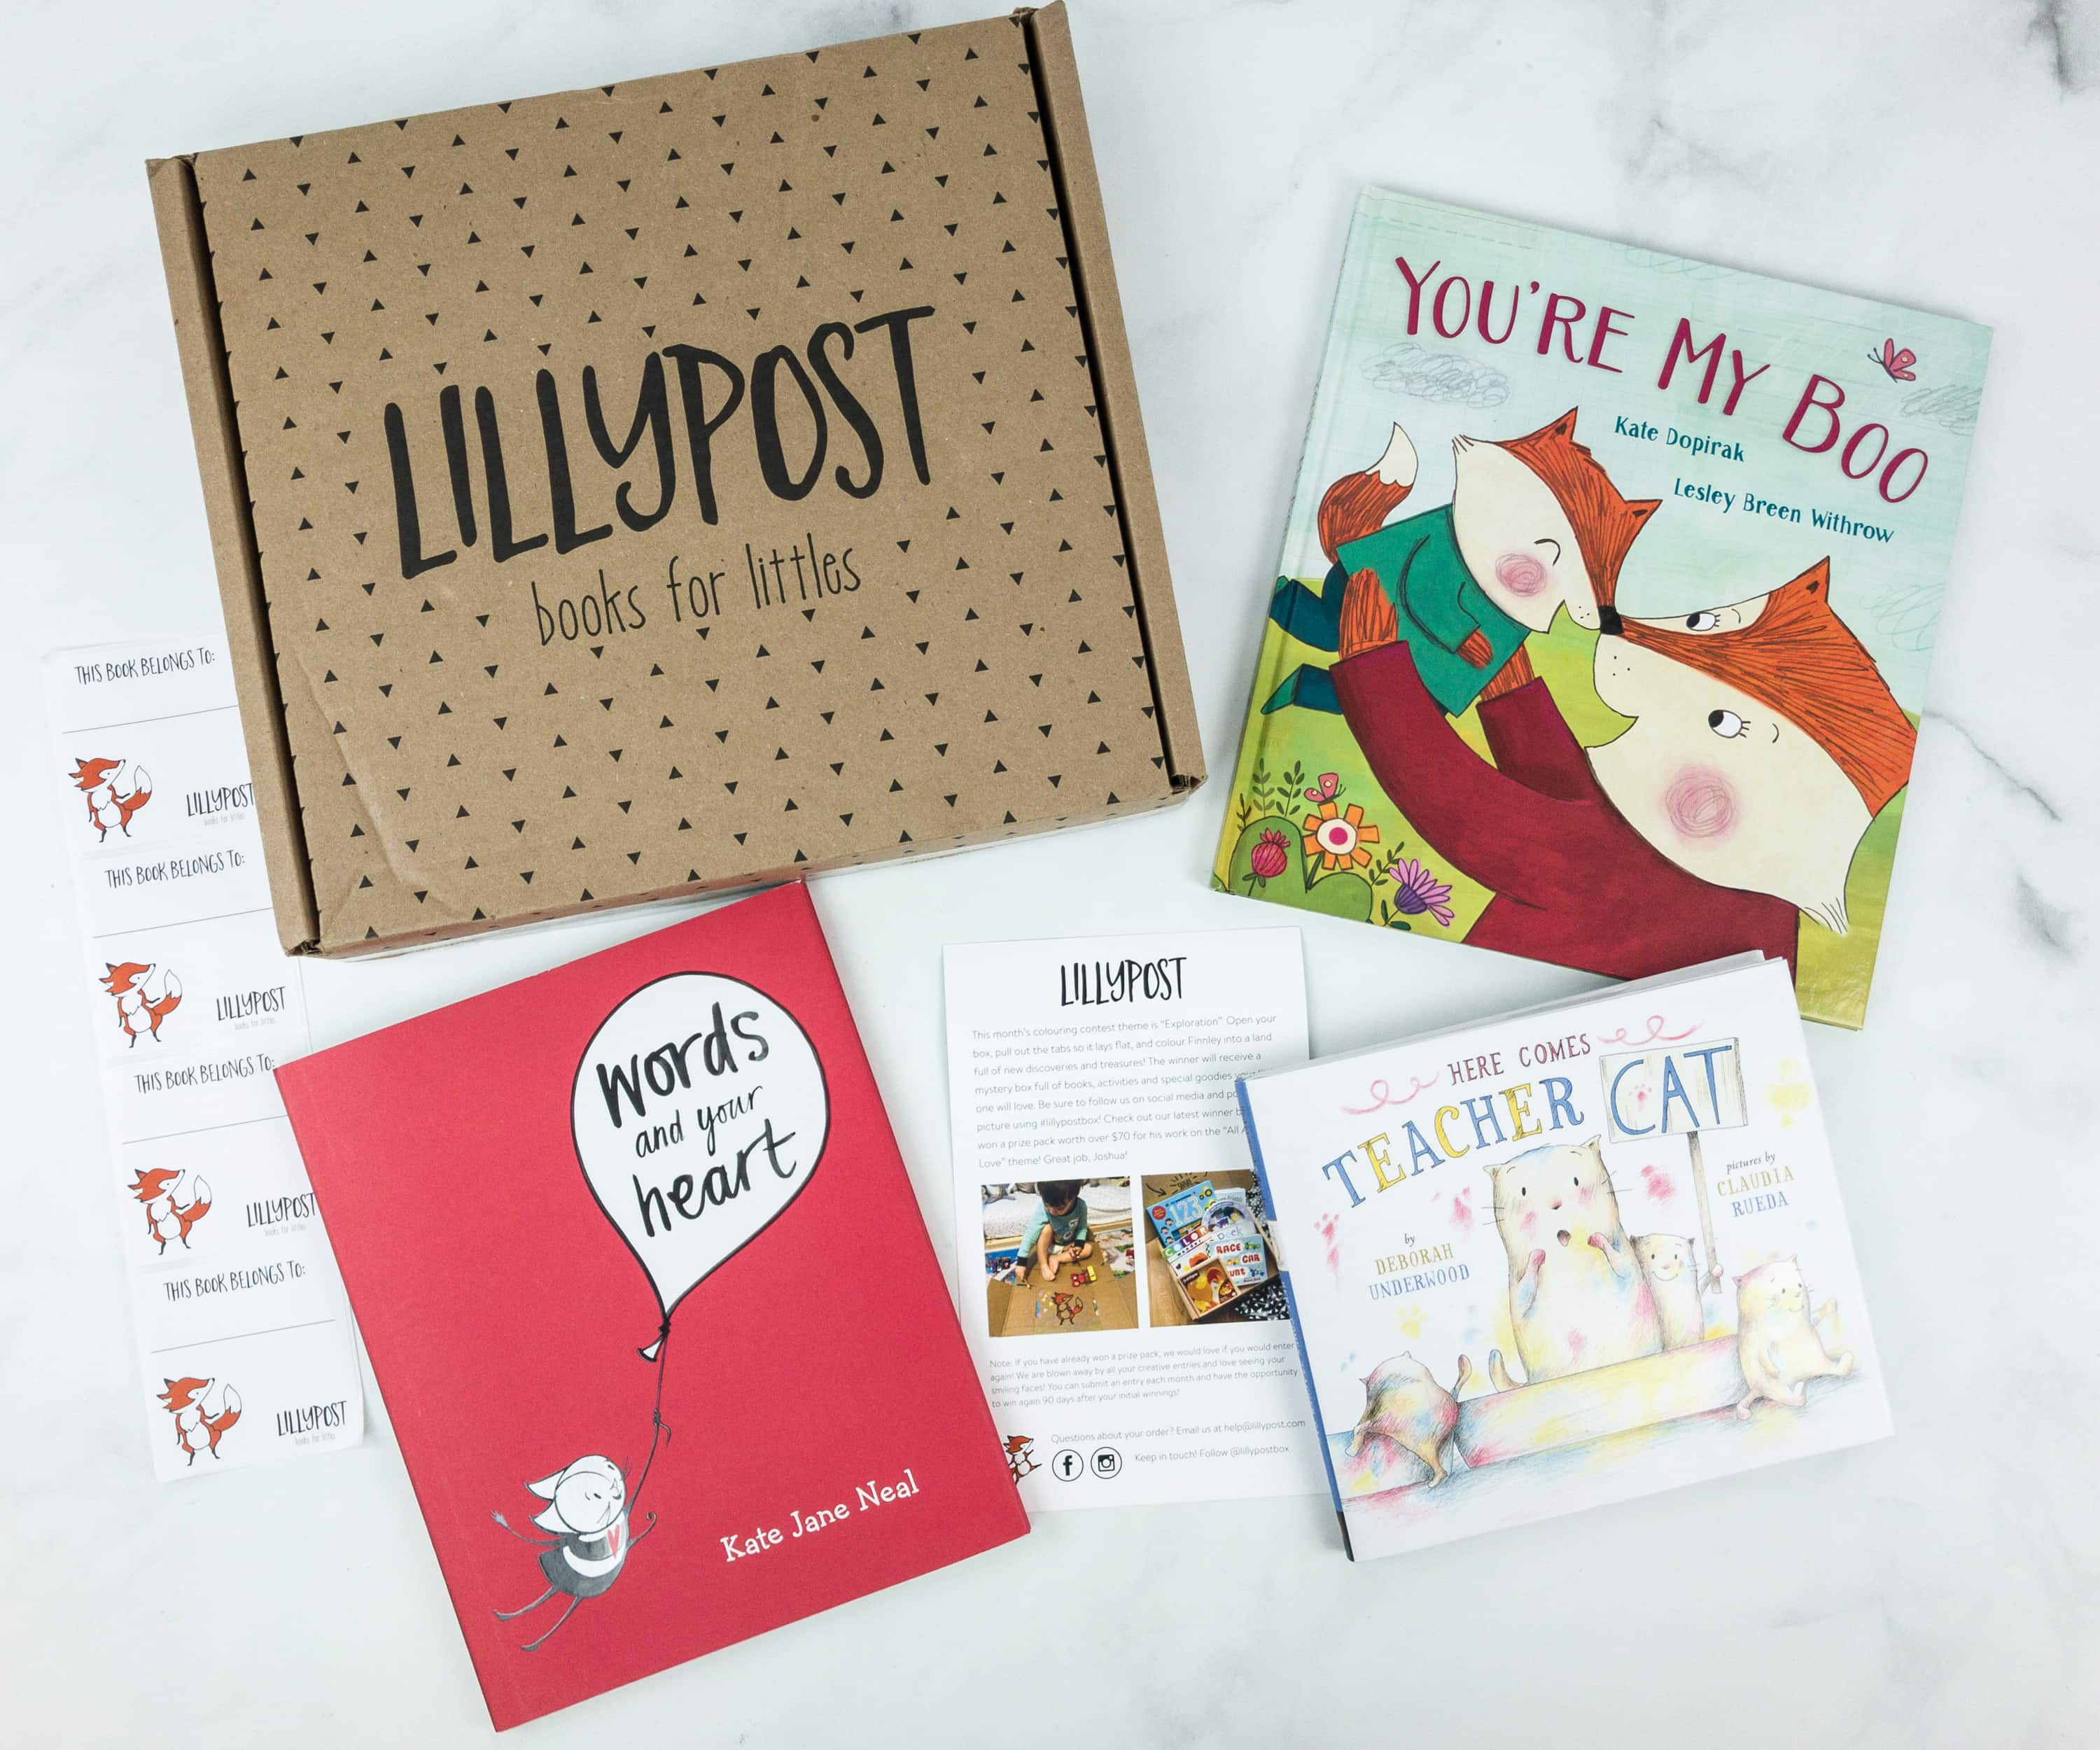 Lillypost April 2019 Board Book Subscription Box Review – PICTURE BOOKS